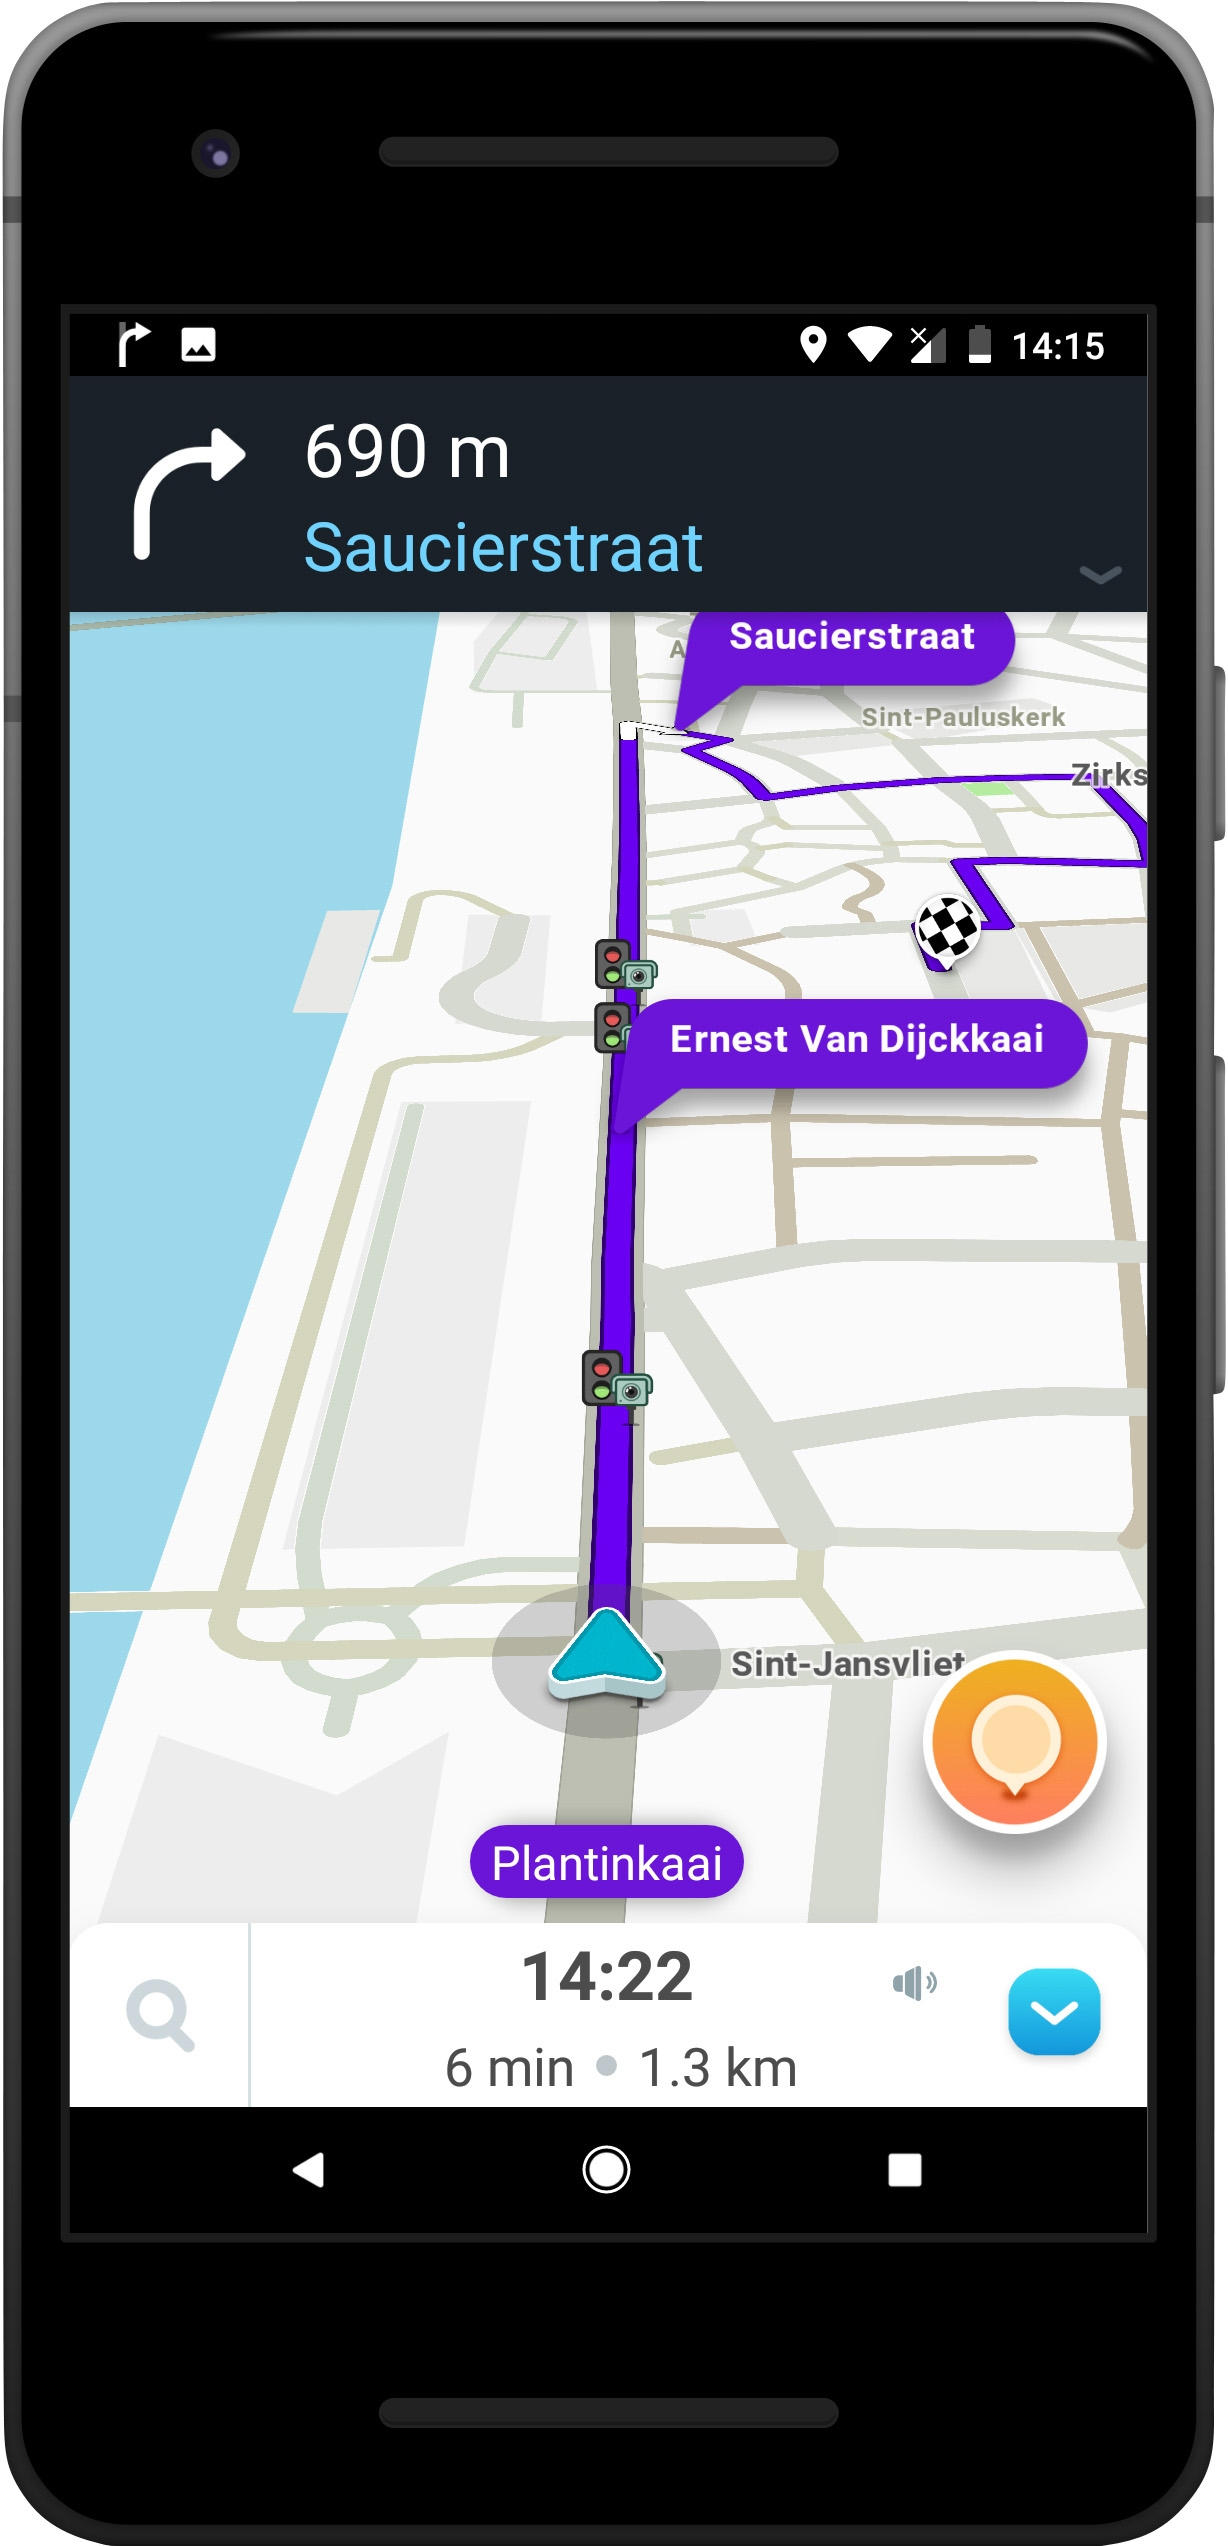 GPS, Maps, Traffic Alerts & Live Navigation (Android)